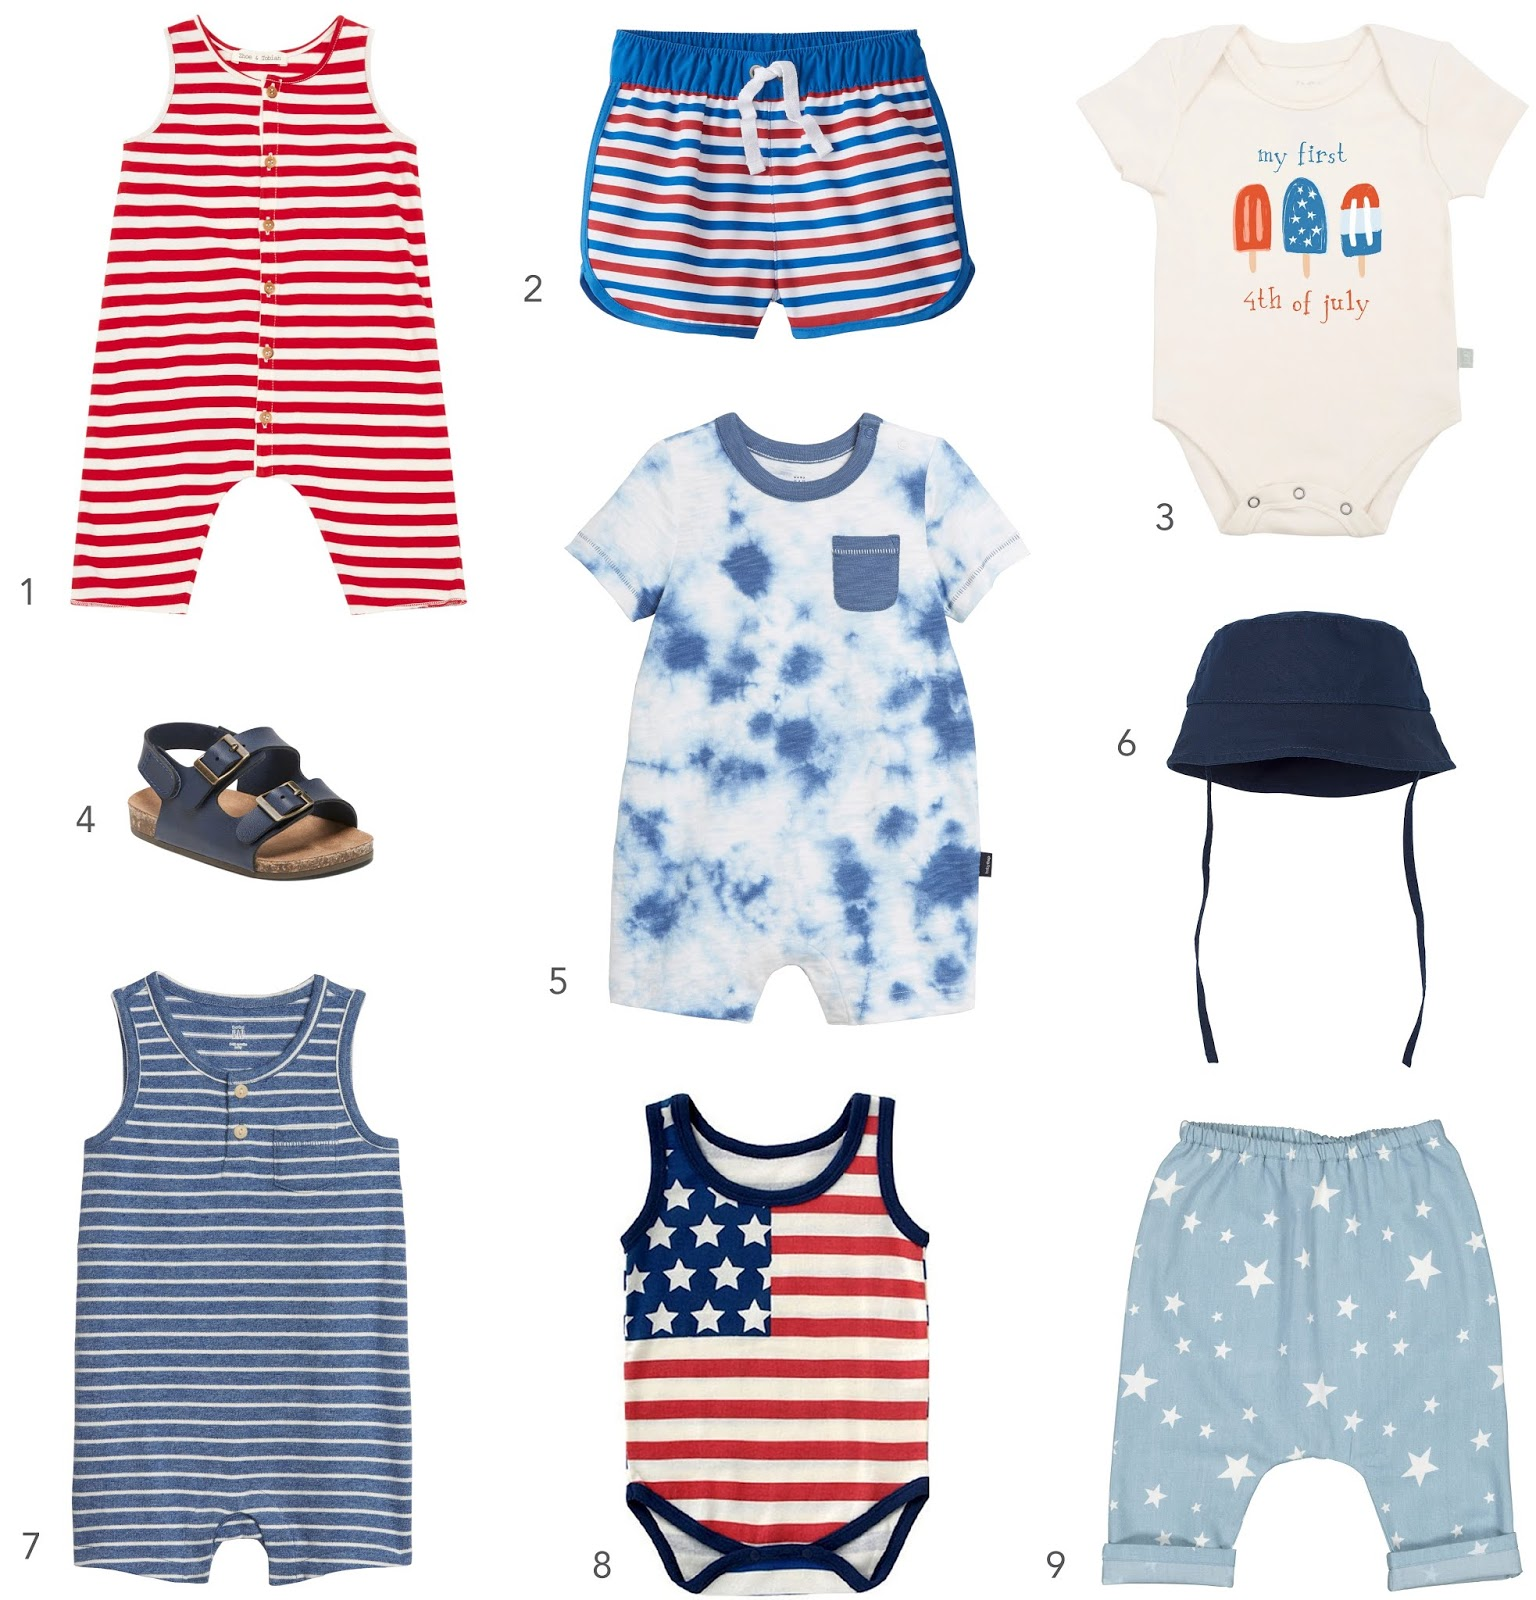 A round-up of 9 baby boy 4th of July outfit ideas